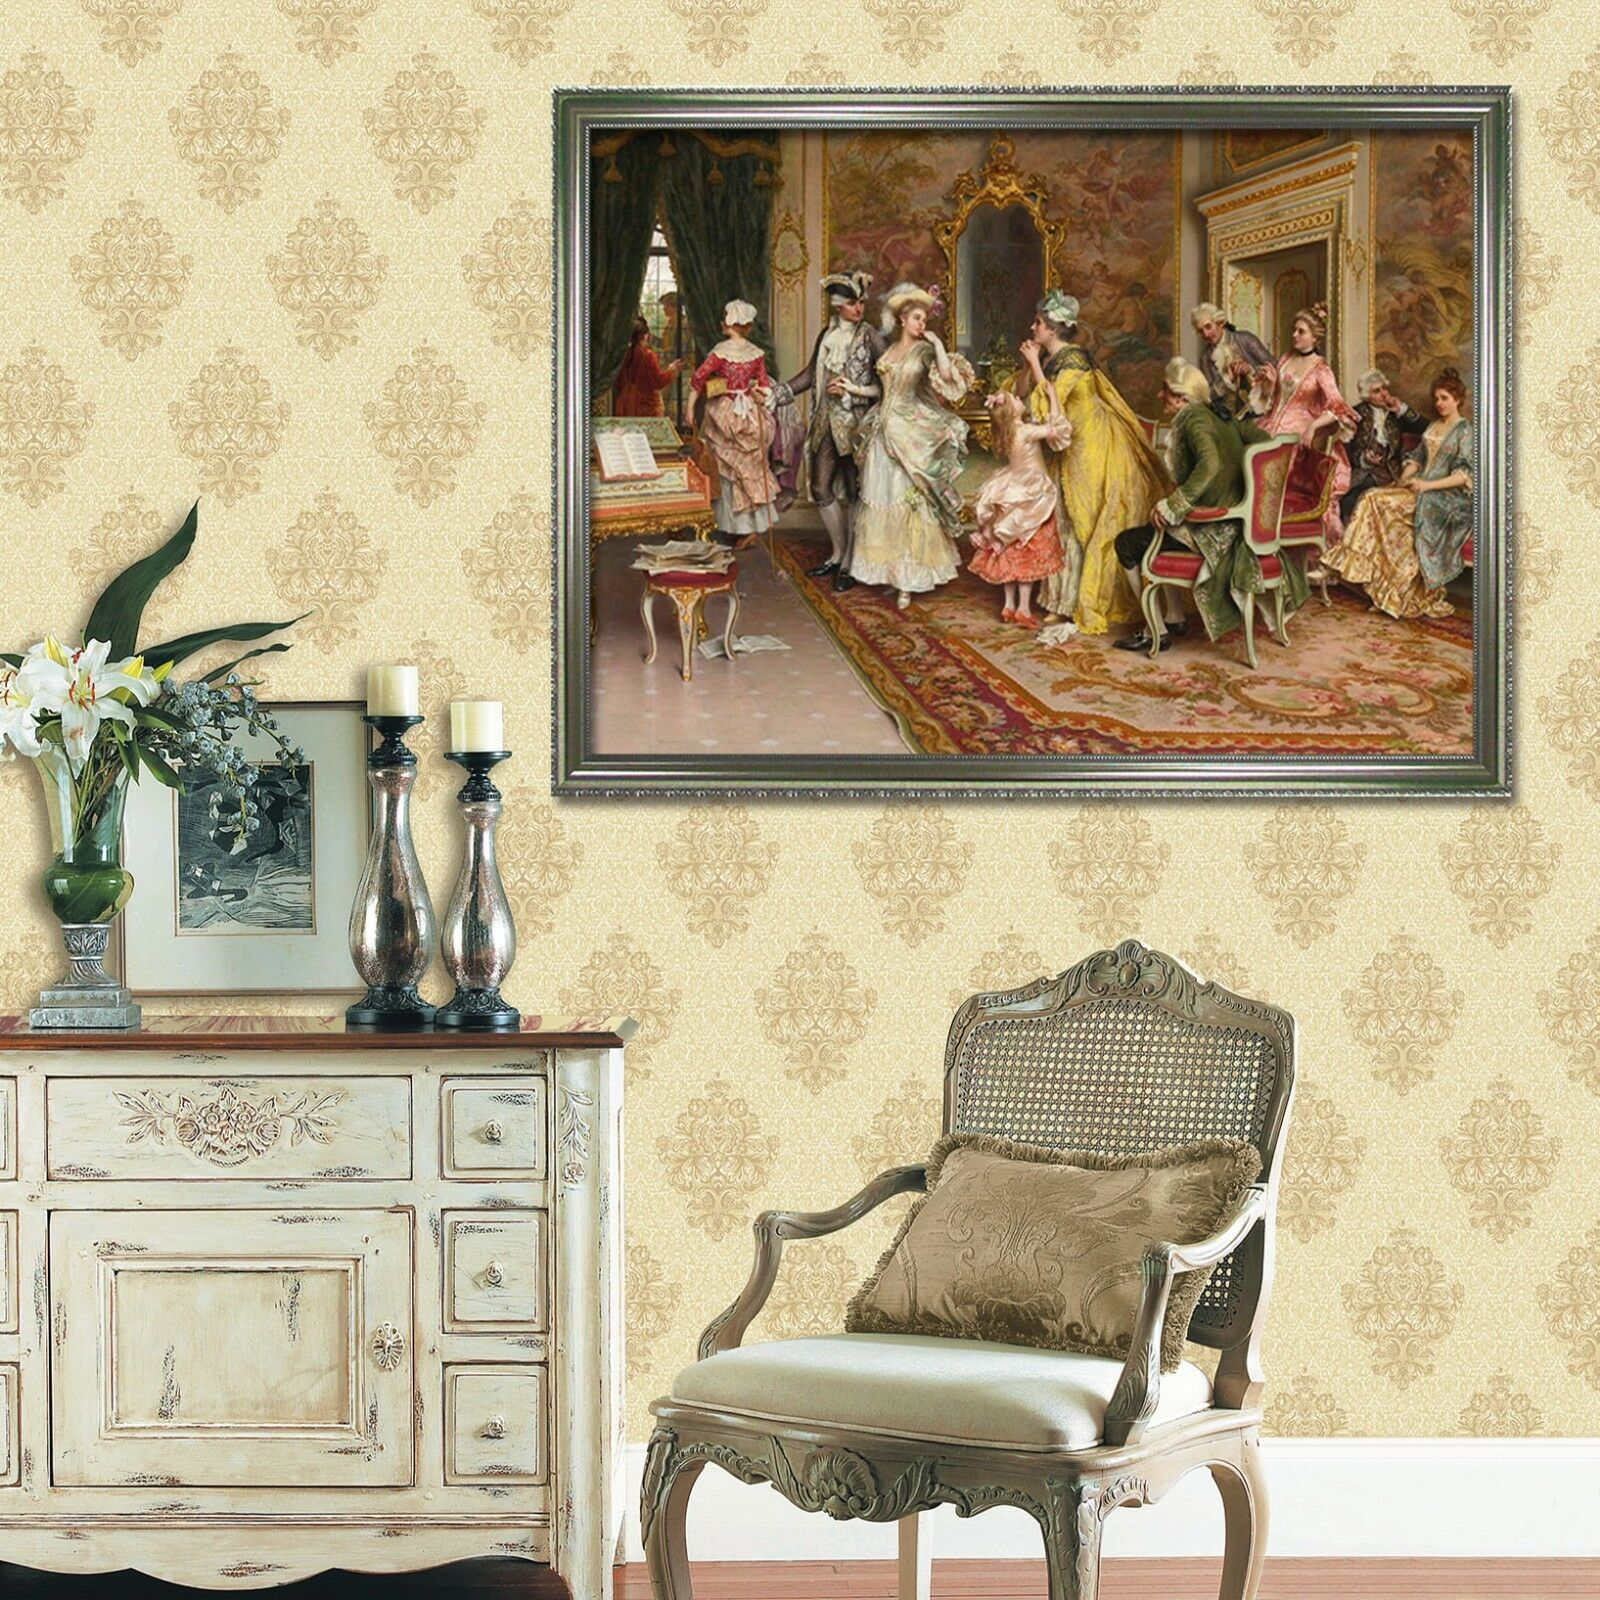 3D Europe Royal Painting 8 Framed Poster Home Decor Drucken Painting Kunst WandPapier